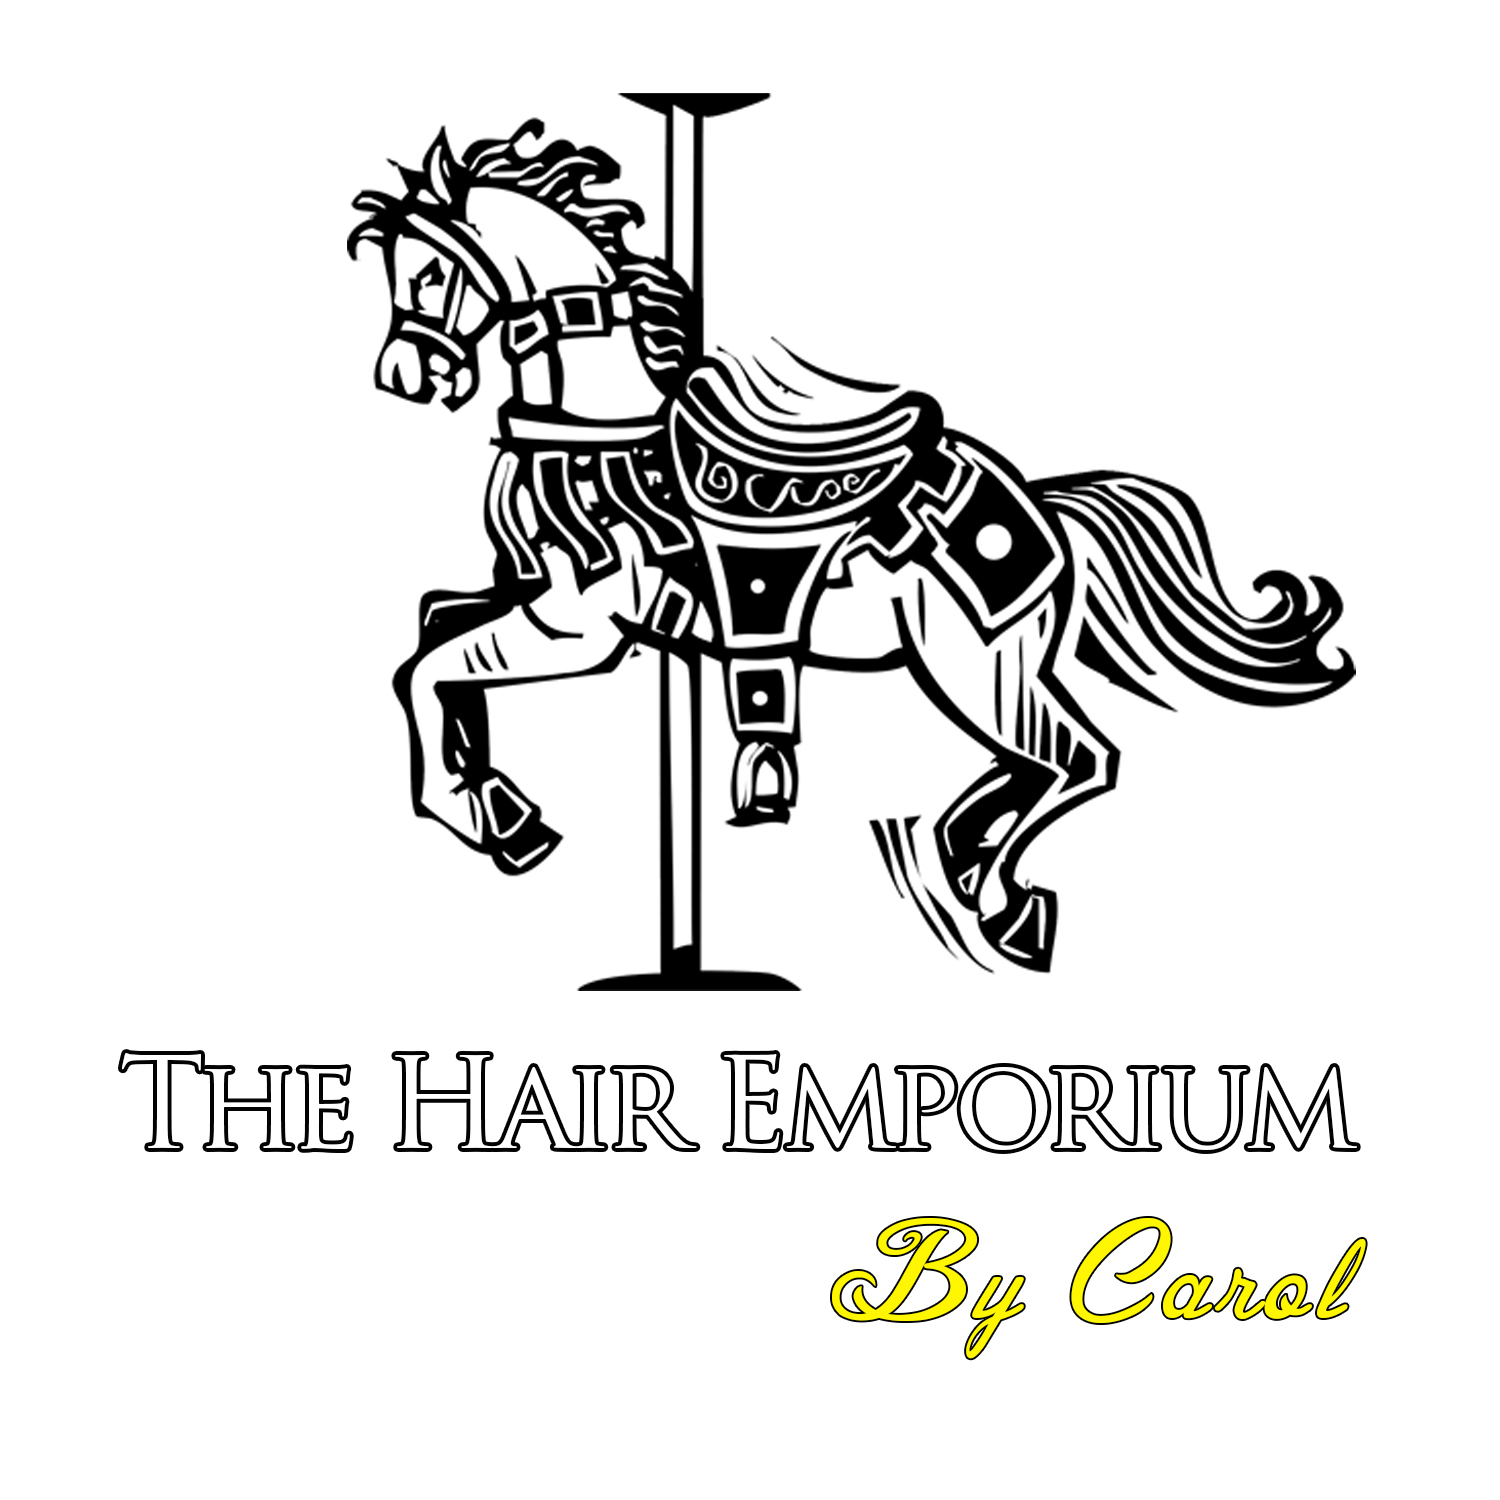 The Hair Emporium By Carol image 5